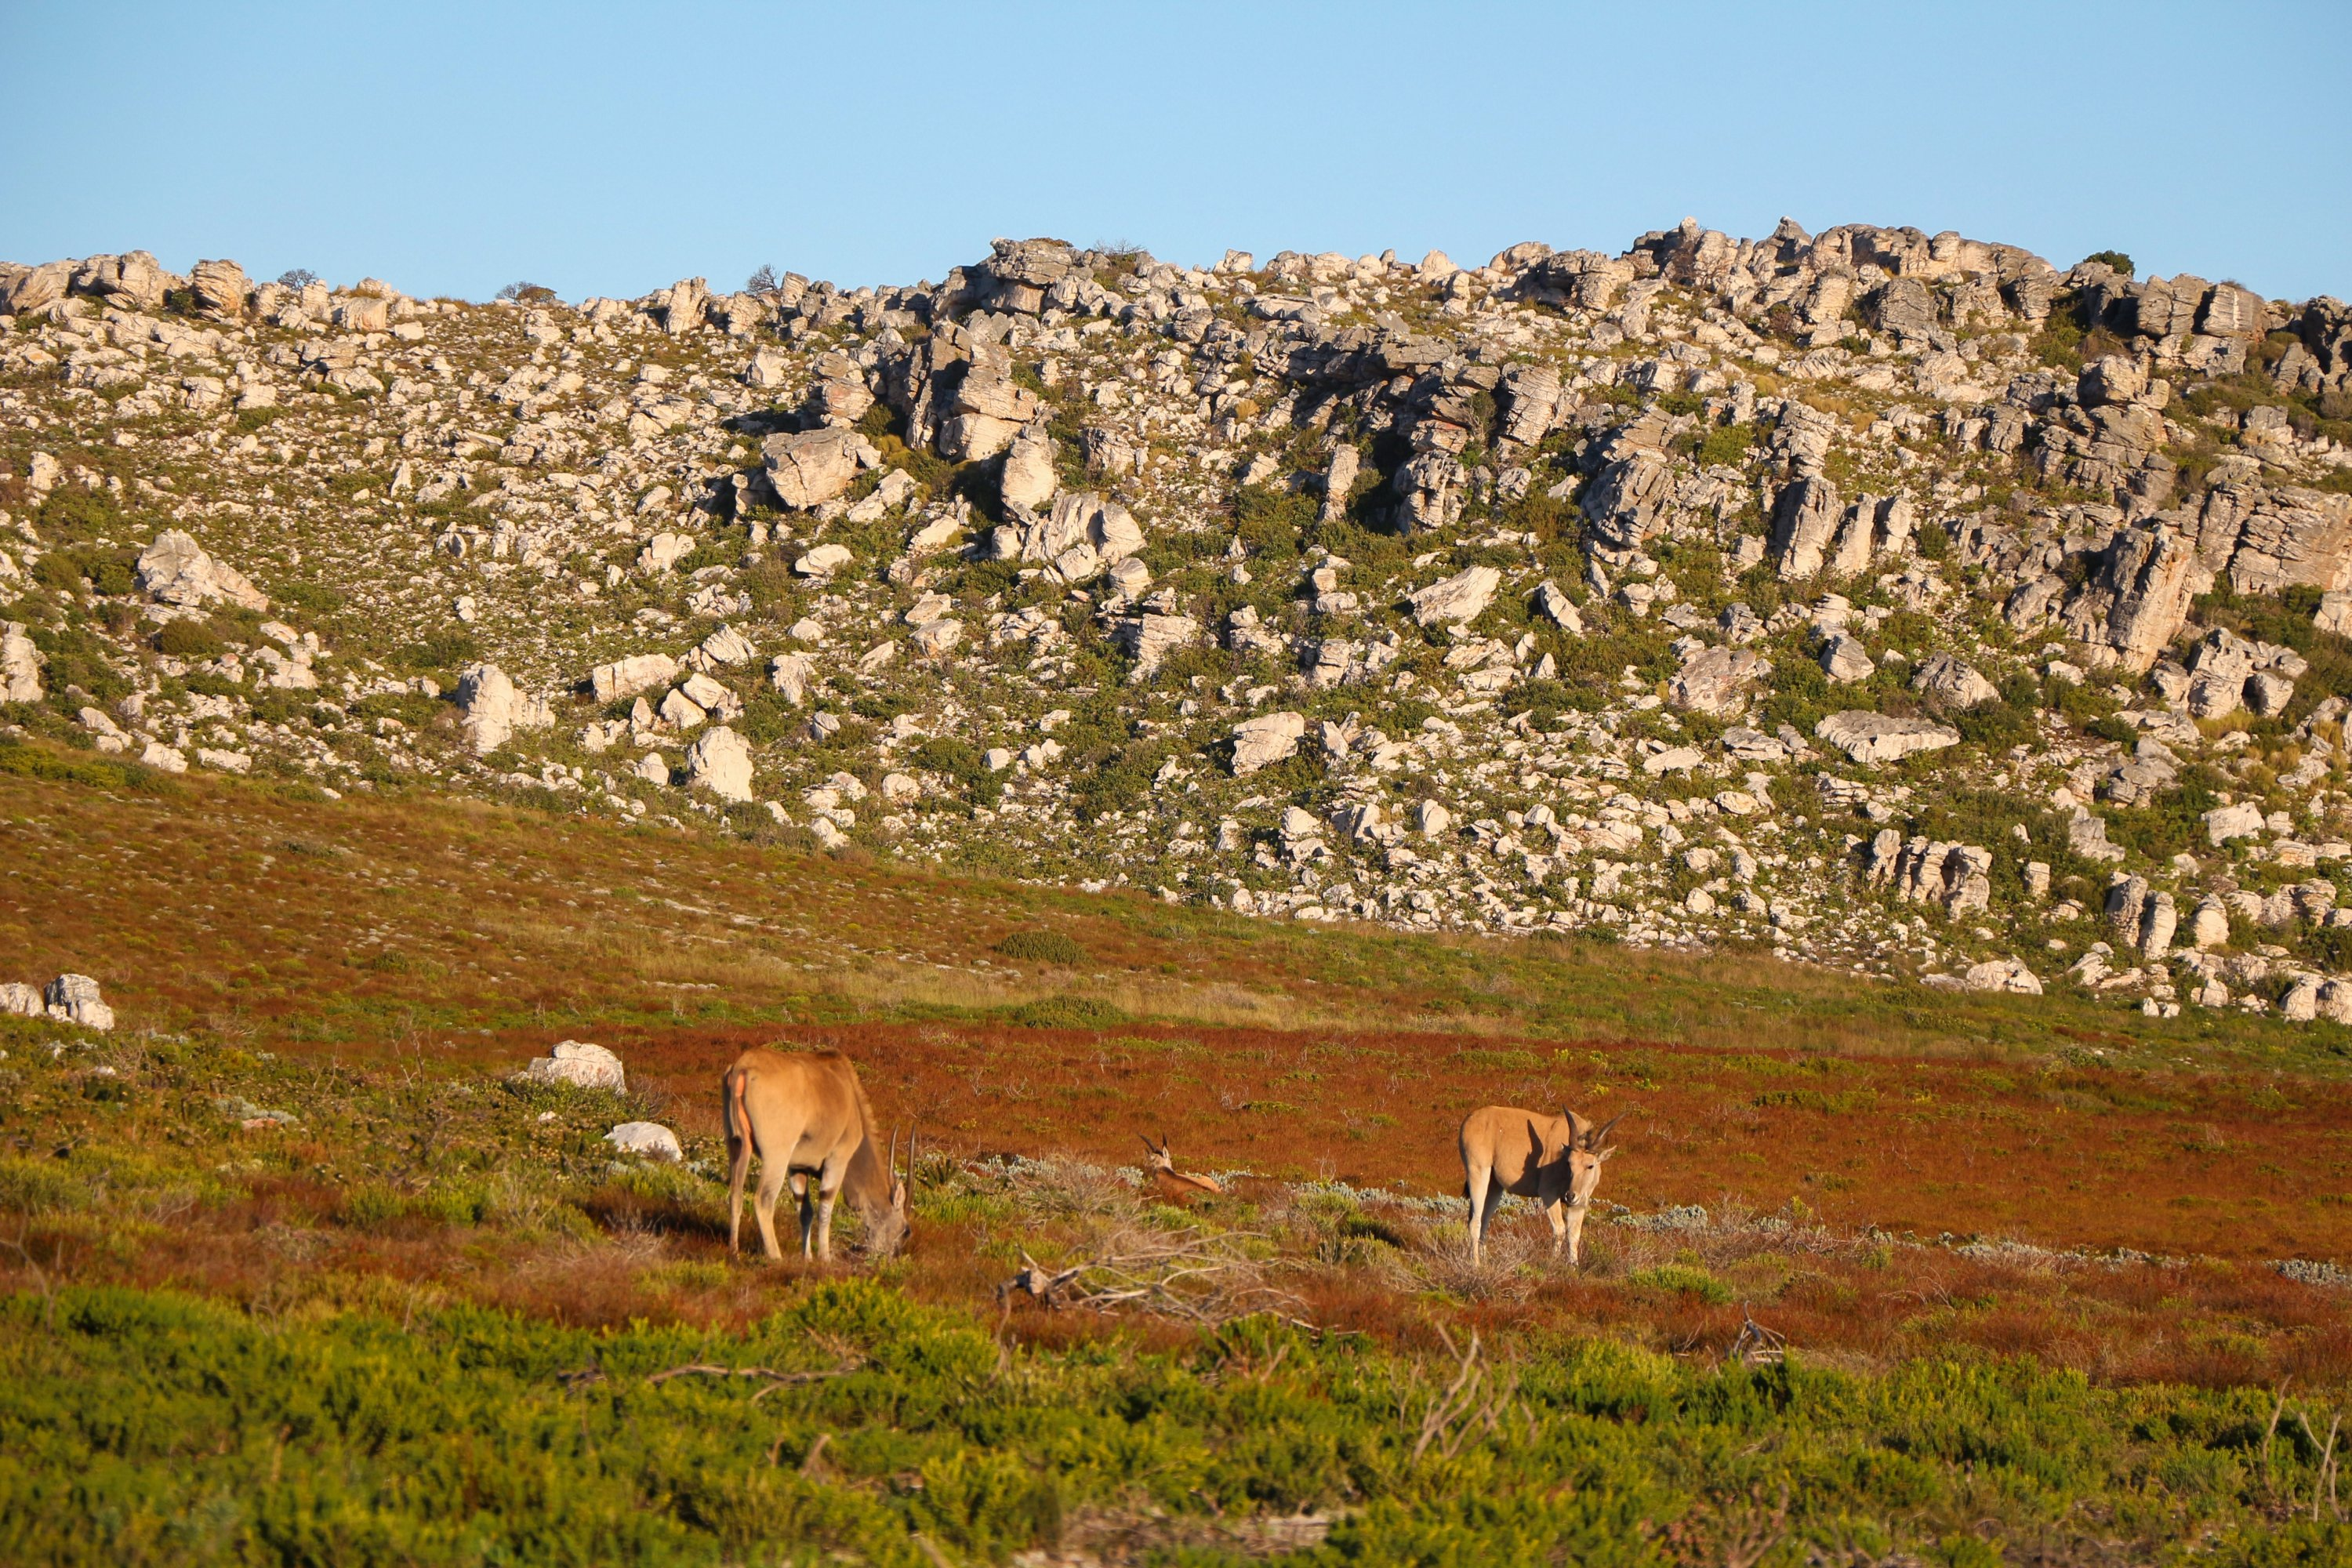 On the Cape Peninsula, you'll see antelopes among other wildlife. (Christian Selz/dpa Photo)